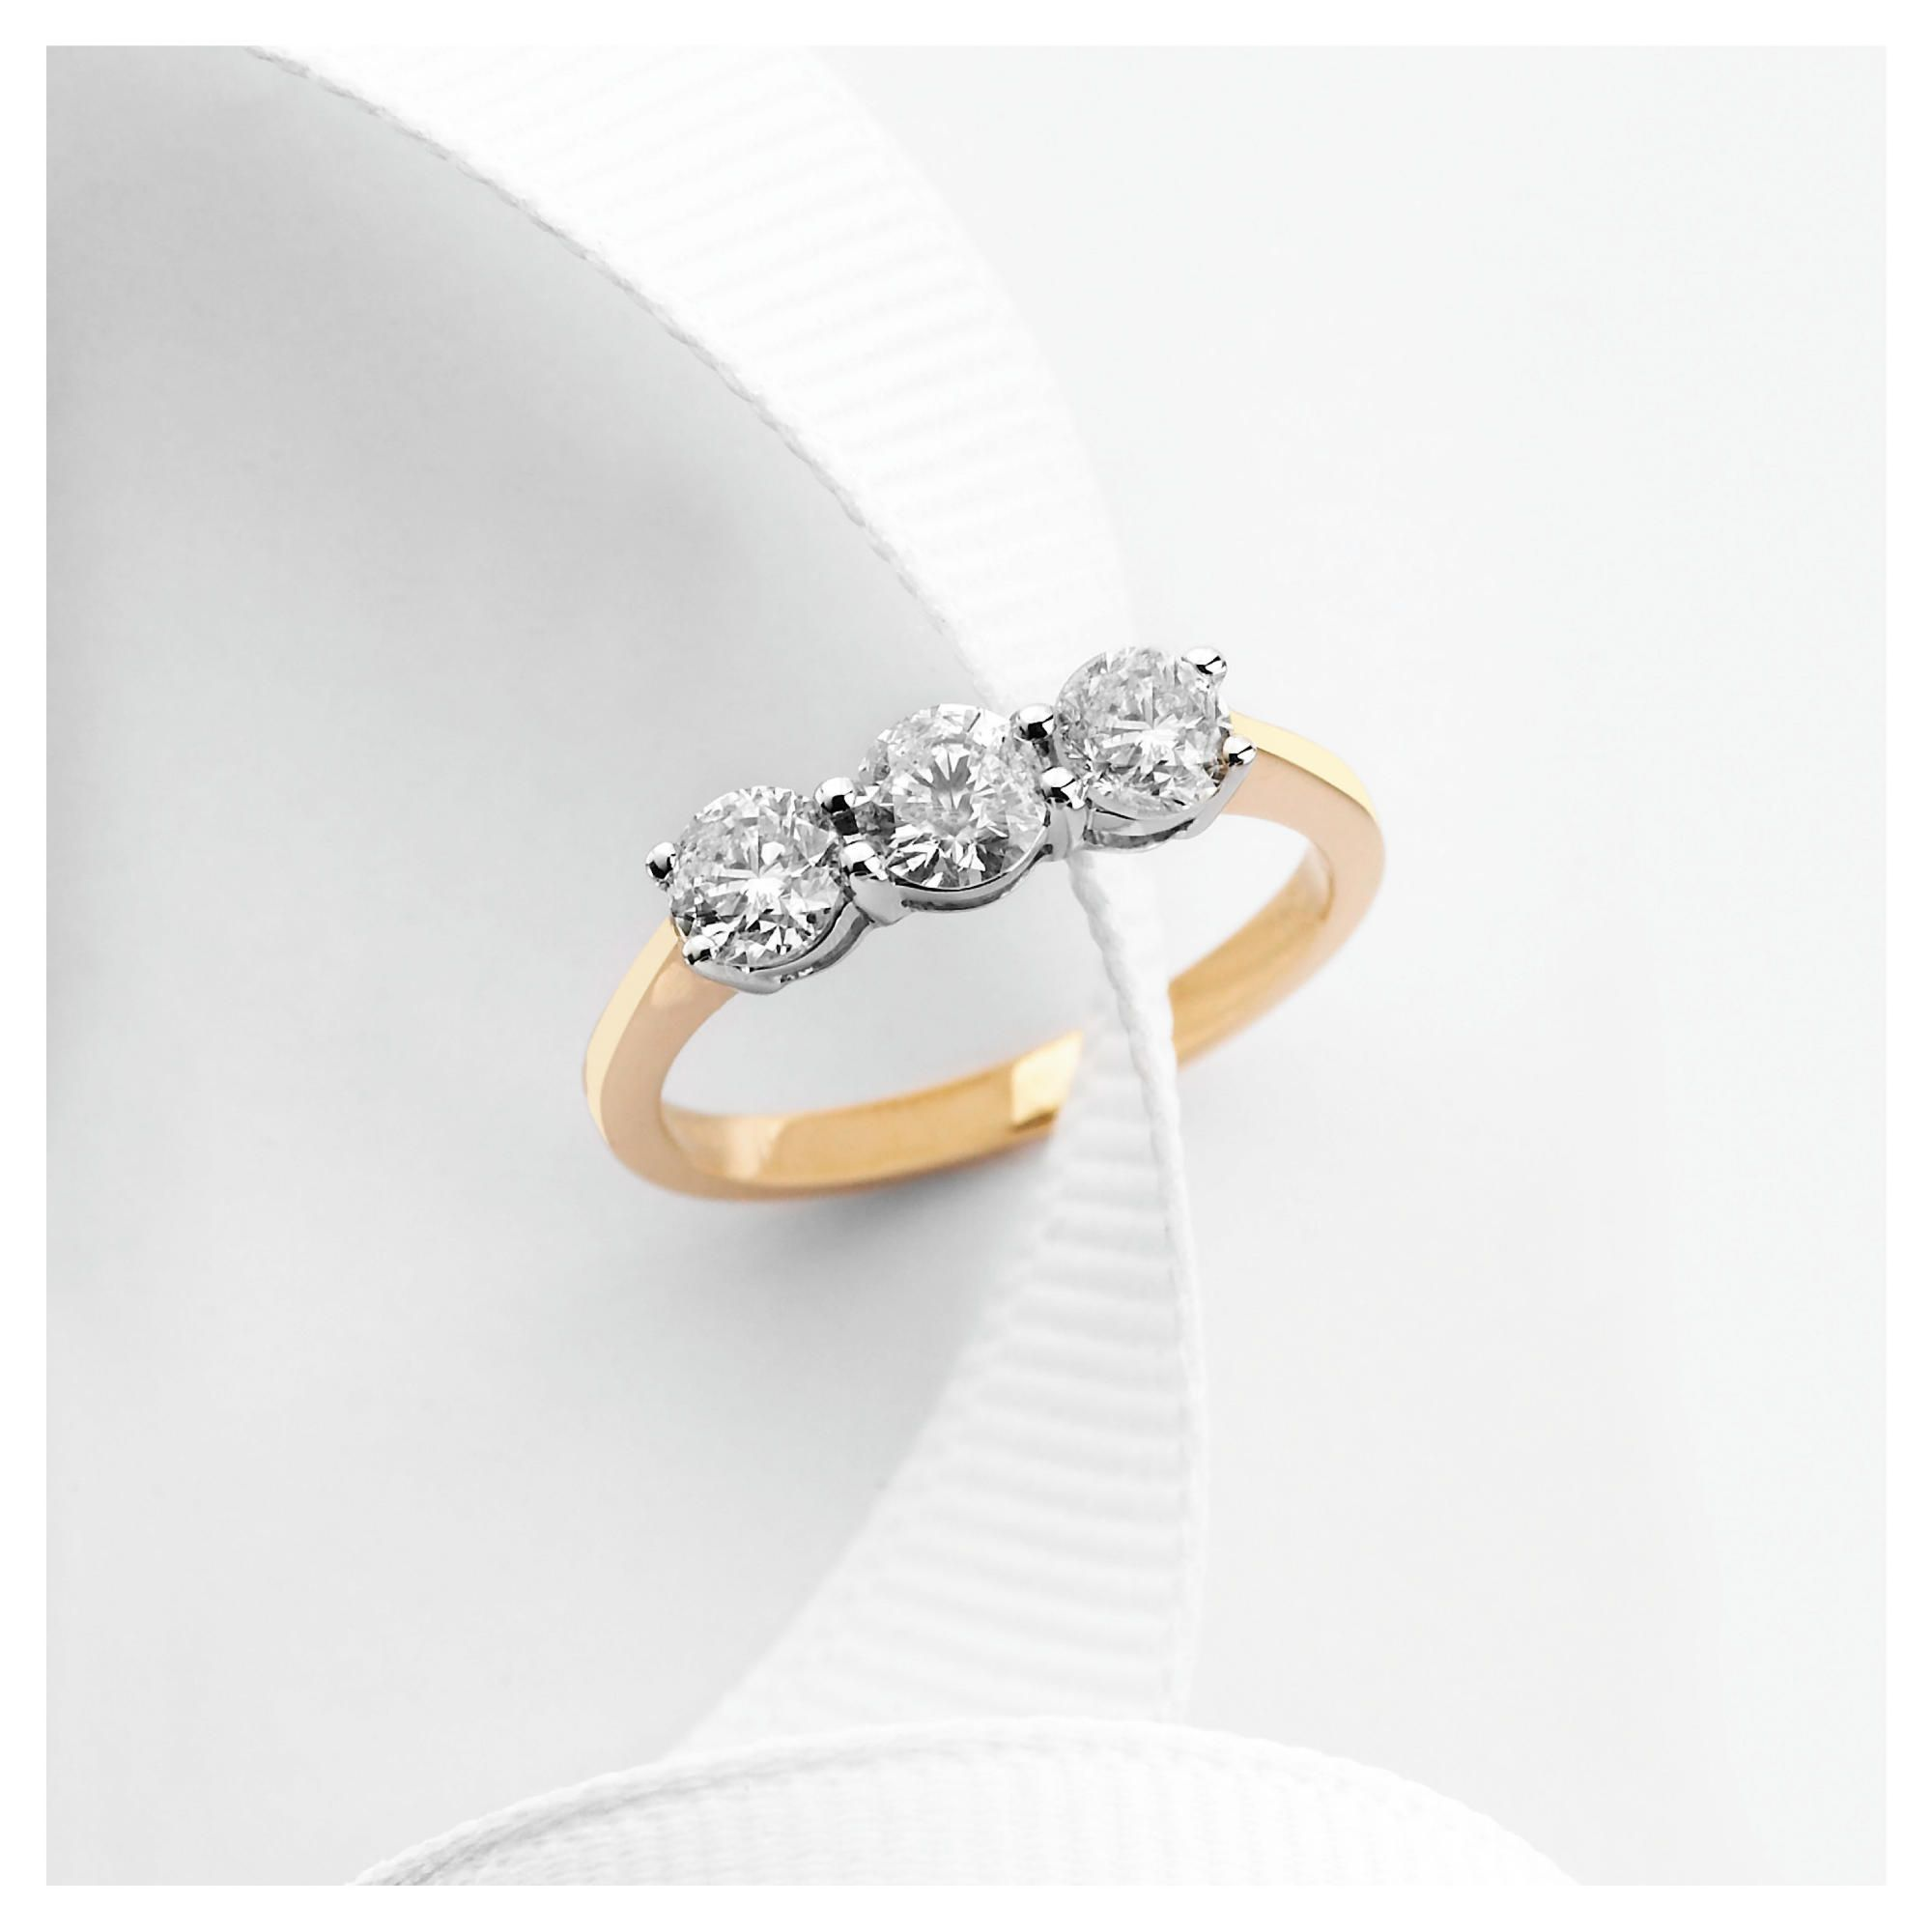 9ct gold 1ct diamond three stone ring, H at Tesco Direct